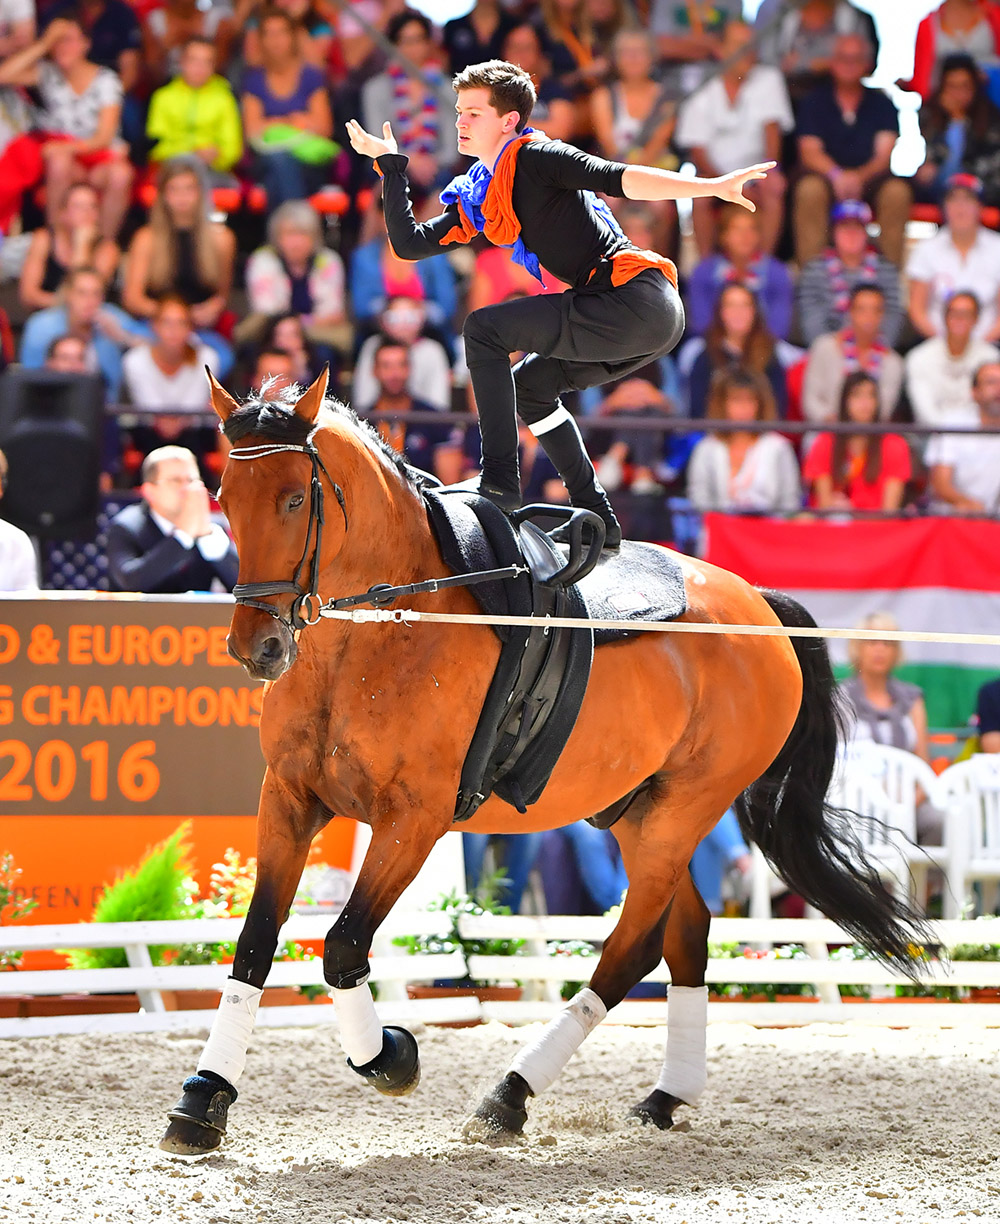 Lambert Leclezio (MRI), gold Individual Senior Male, 2016 FEI World Senior and European Junior Equestrian Vaulting Championships (FEI/Daniel Kaiser)